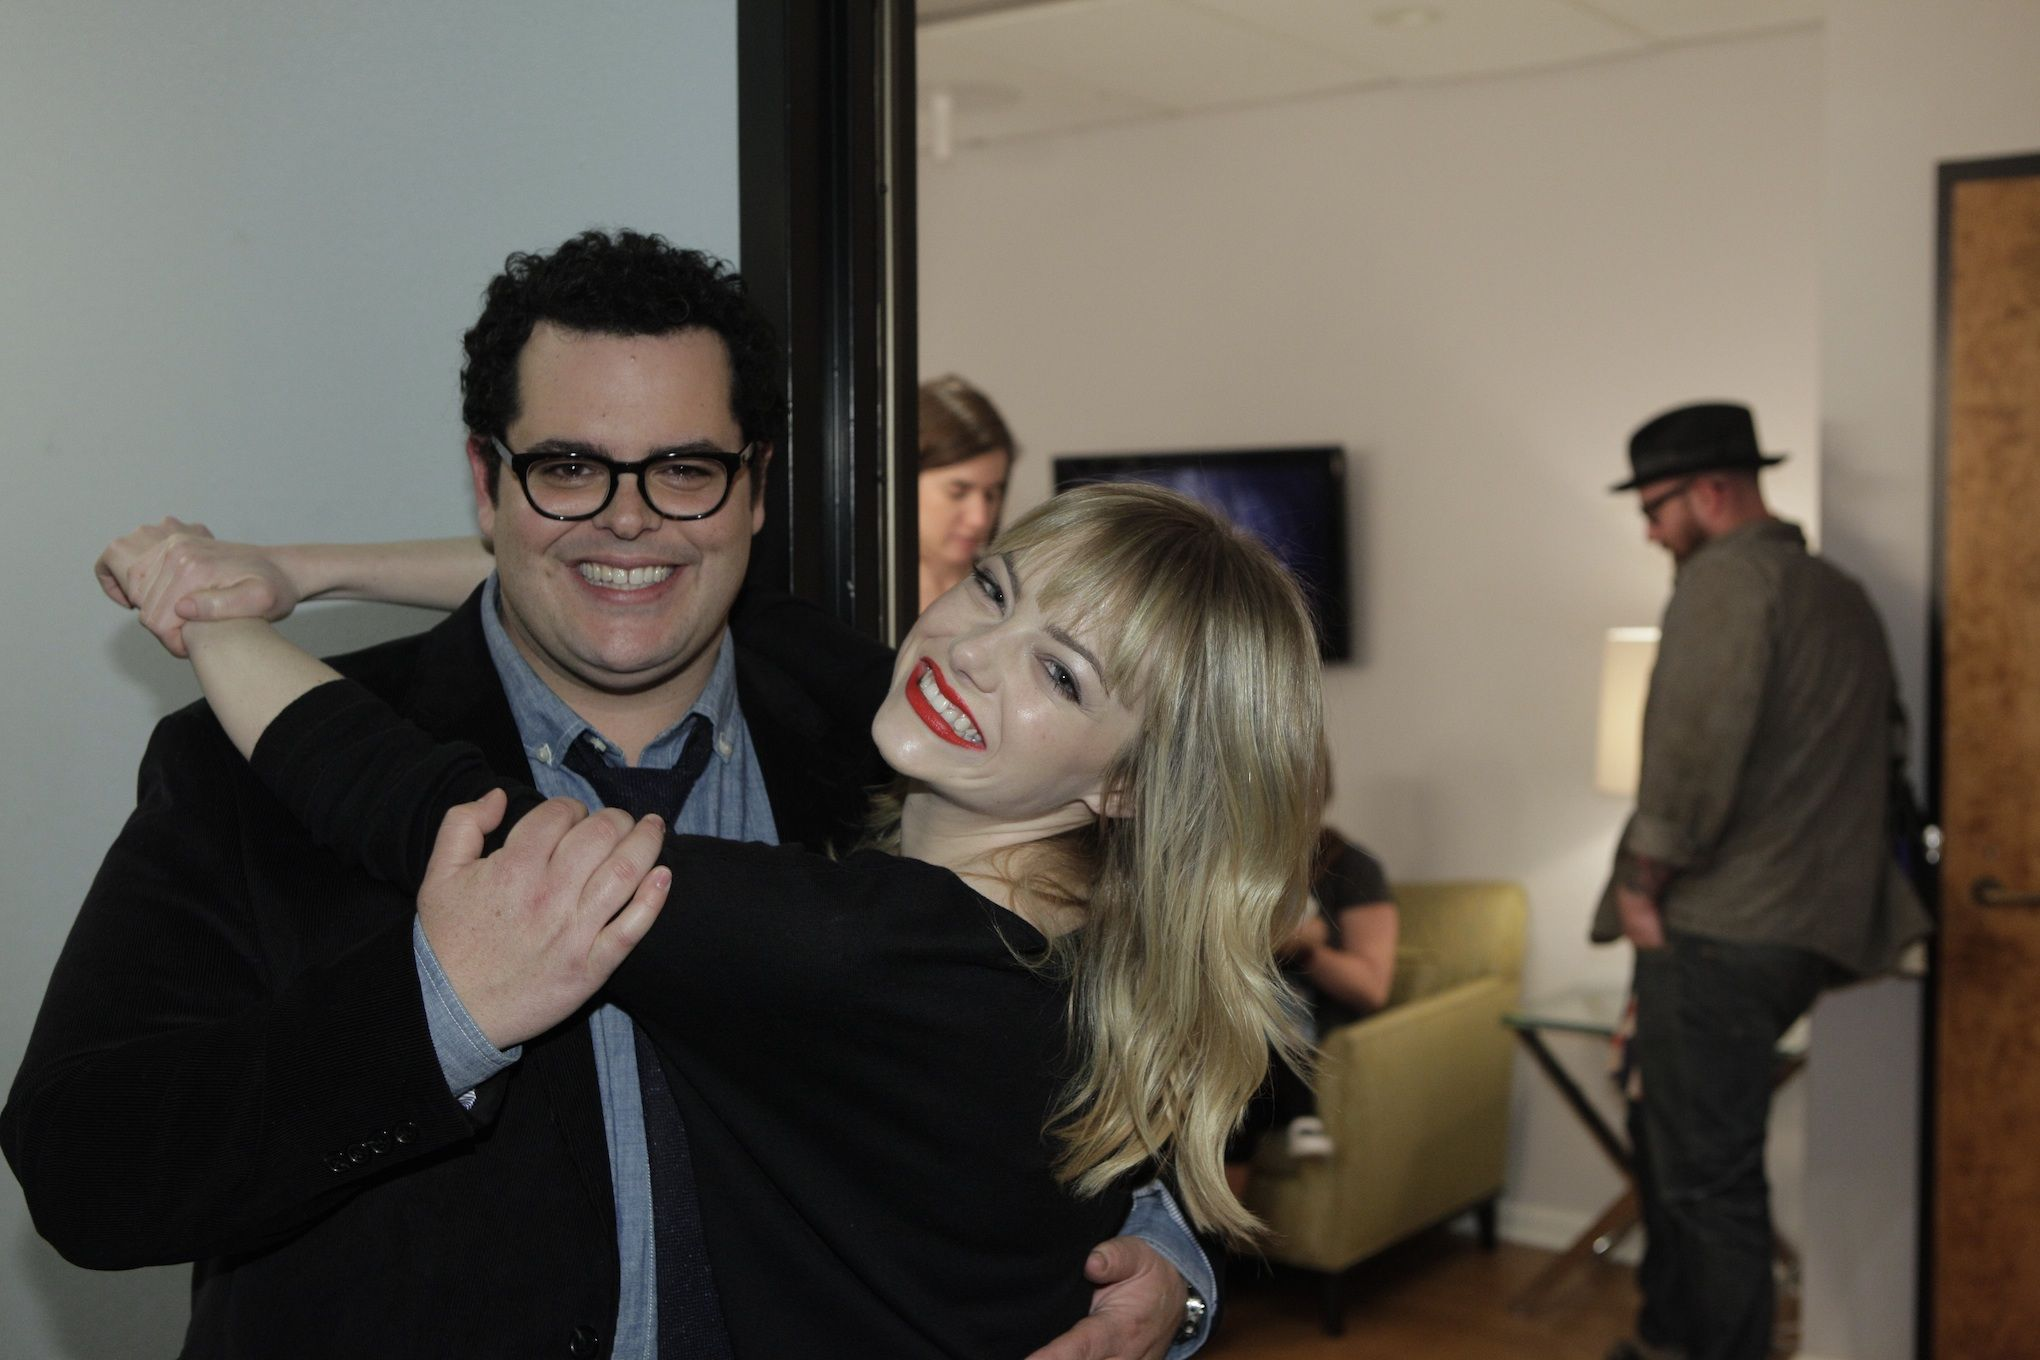 Josh Gad And Emma Stone On Jay Leno 1813 #1600Penn